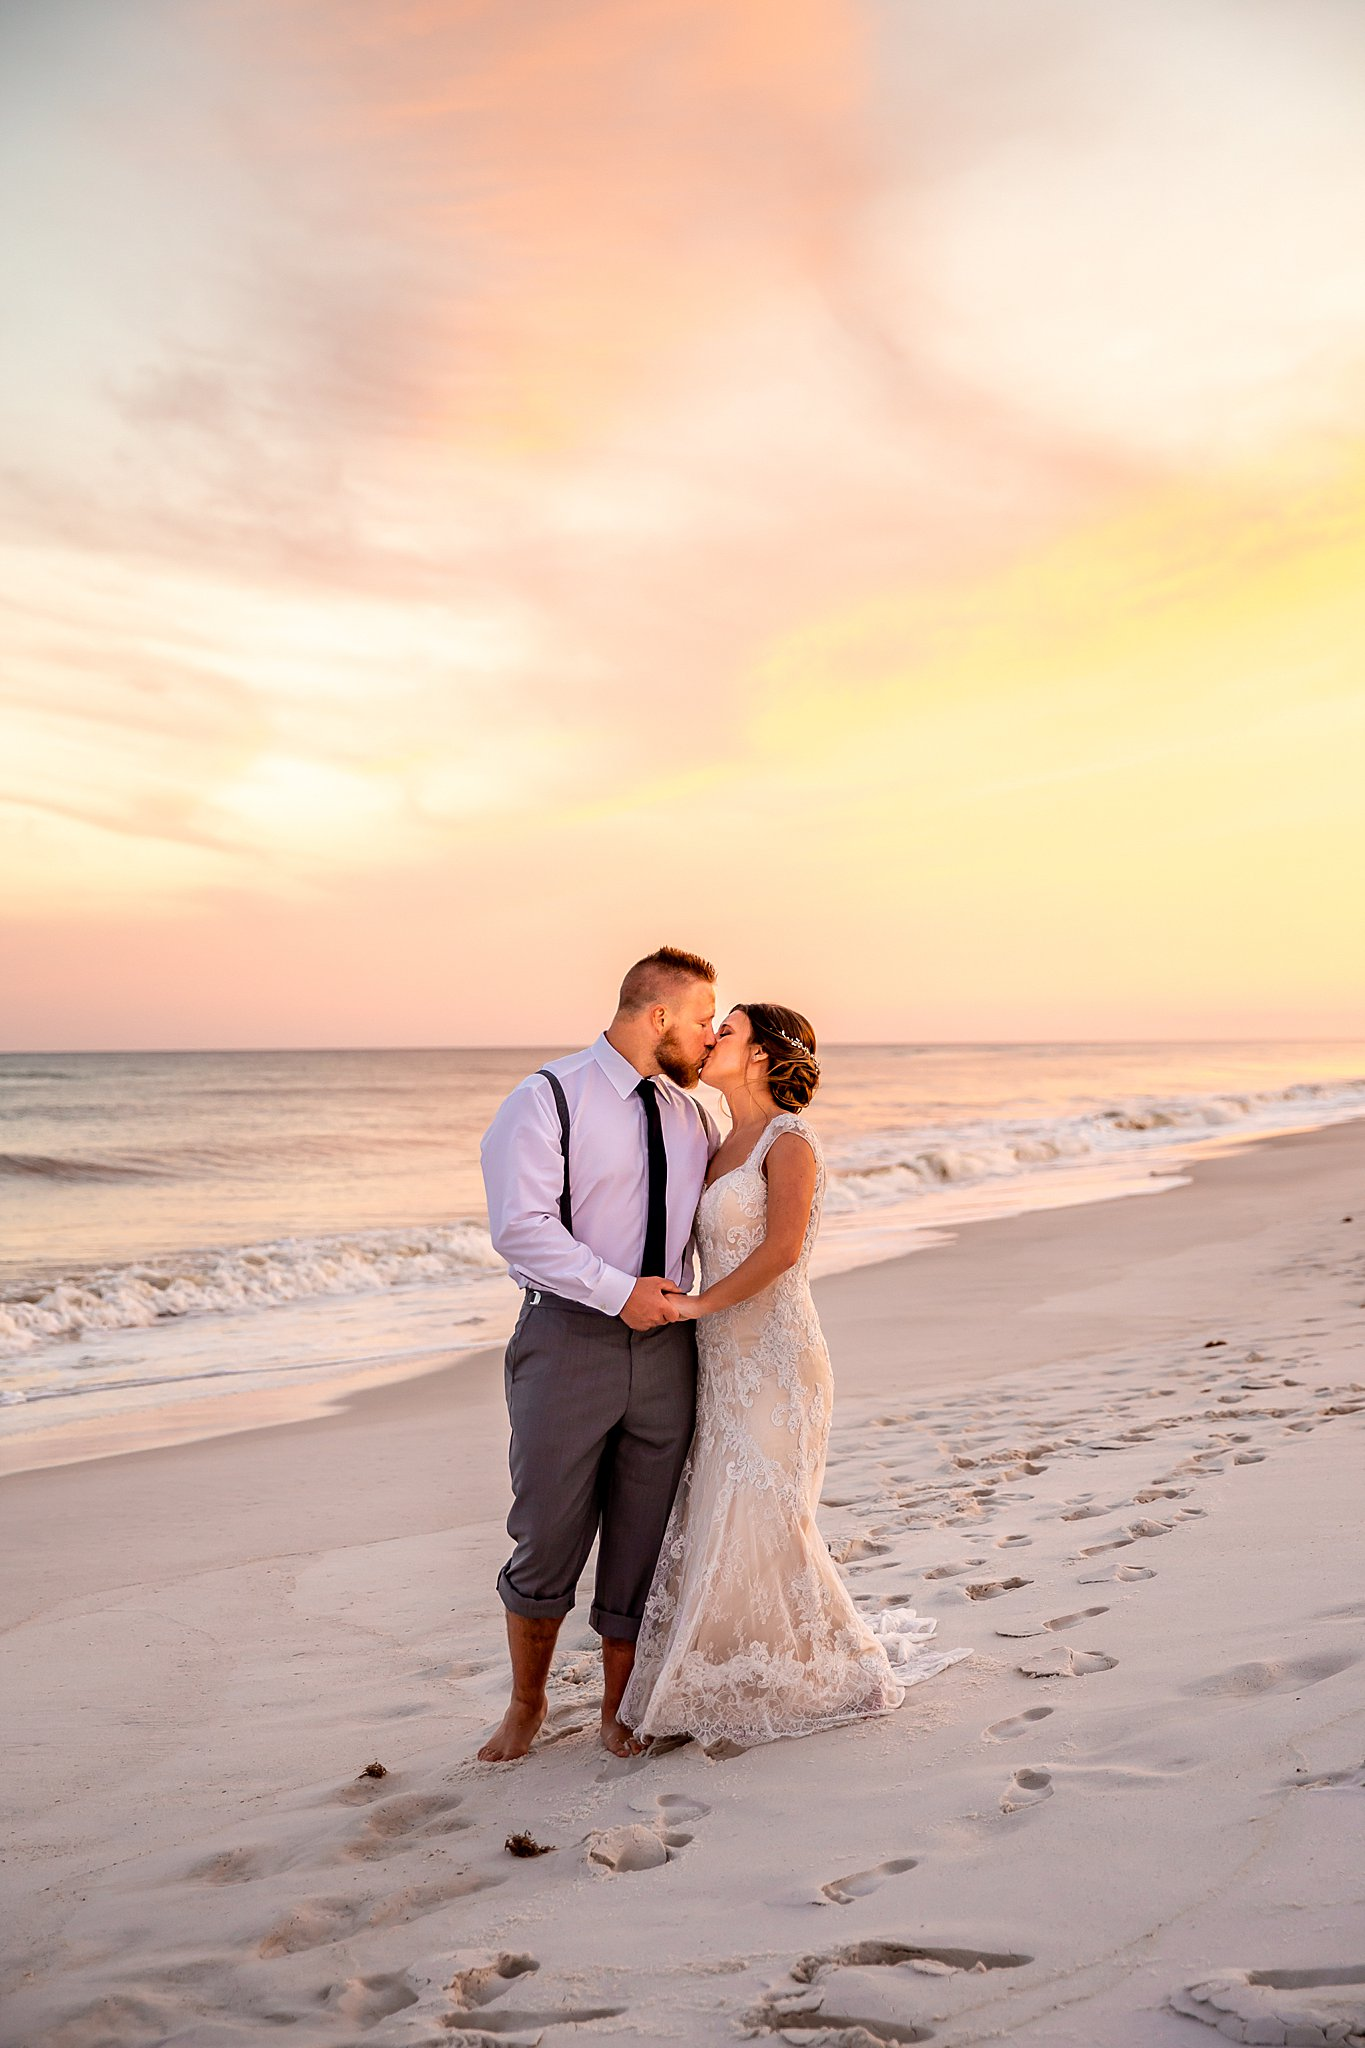 Dreaming Of A Sunset Wedding